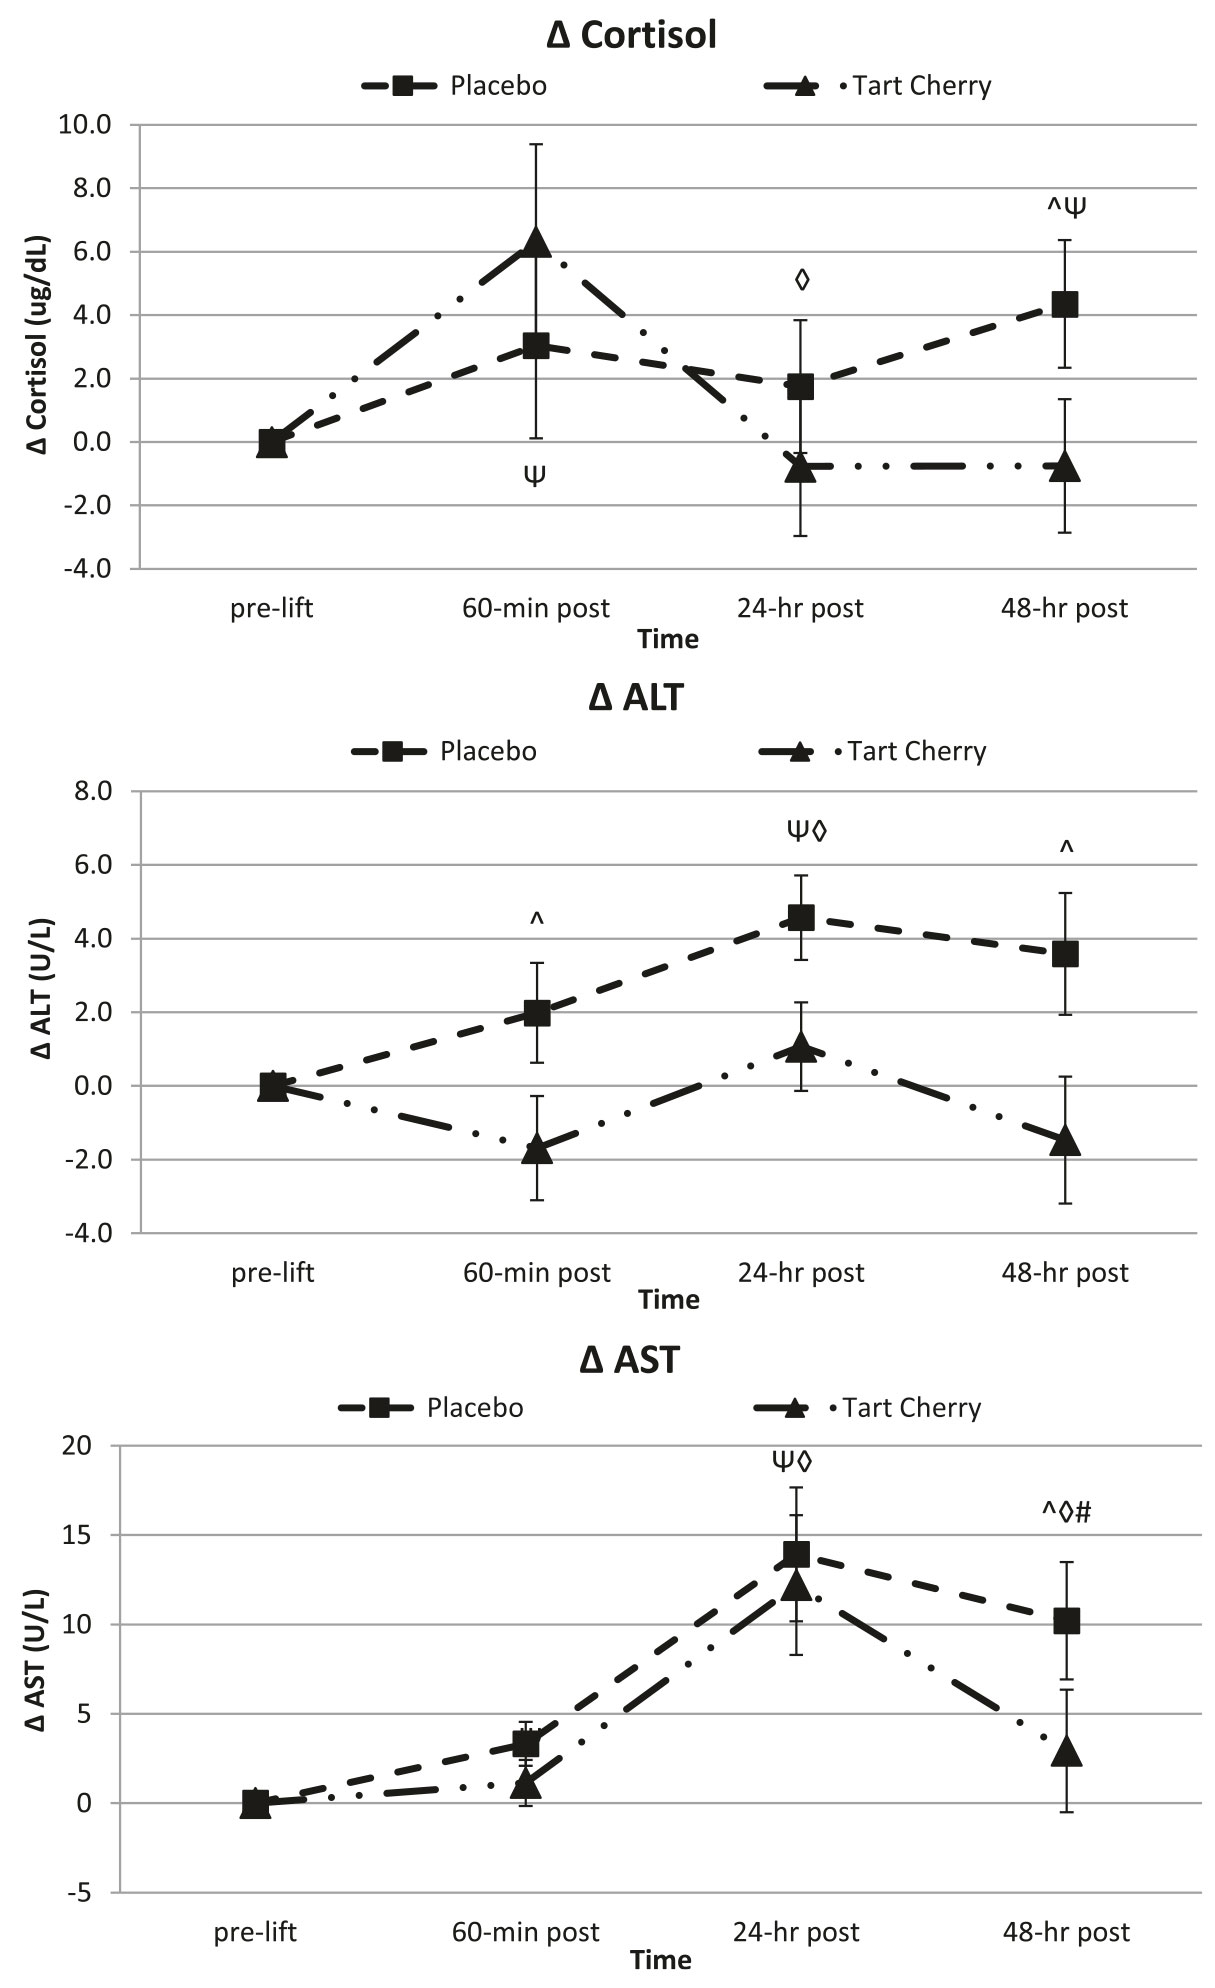 effect of tart cherry on cortisol and markers of inflammation